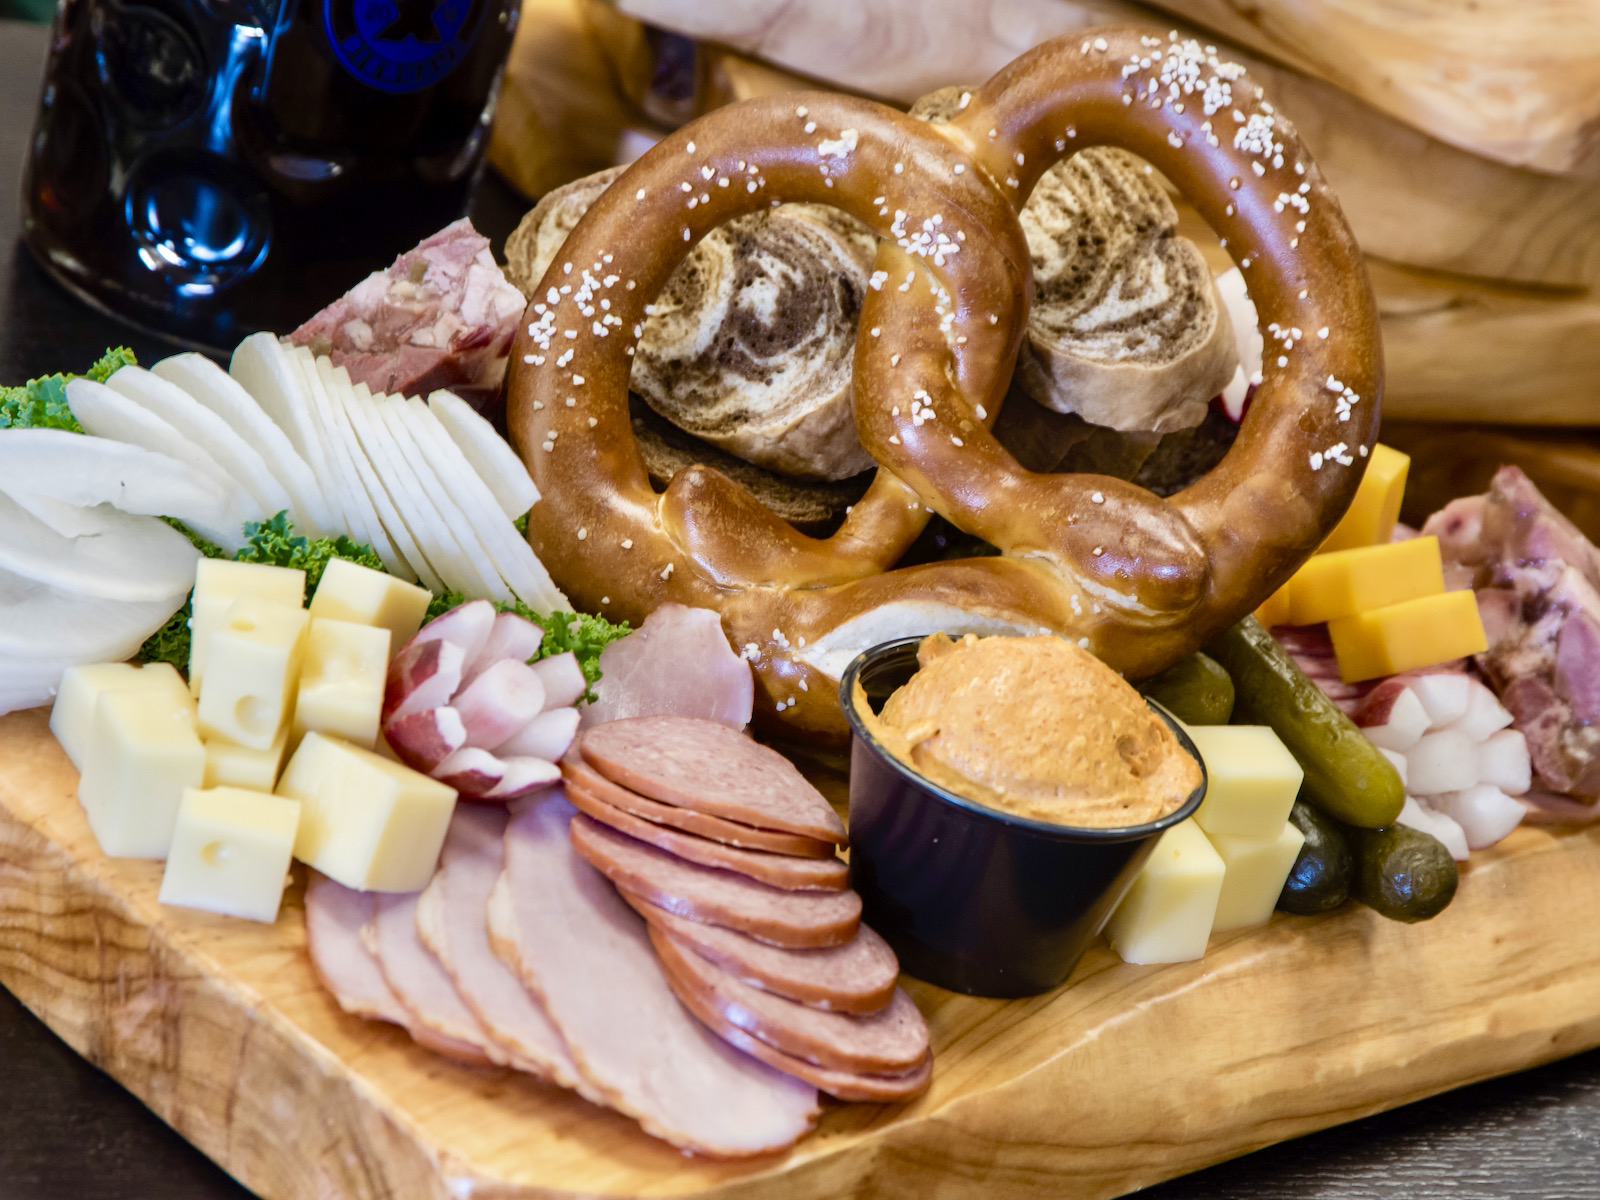 Munich meat and cheese board